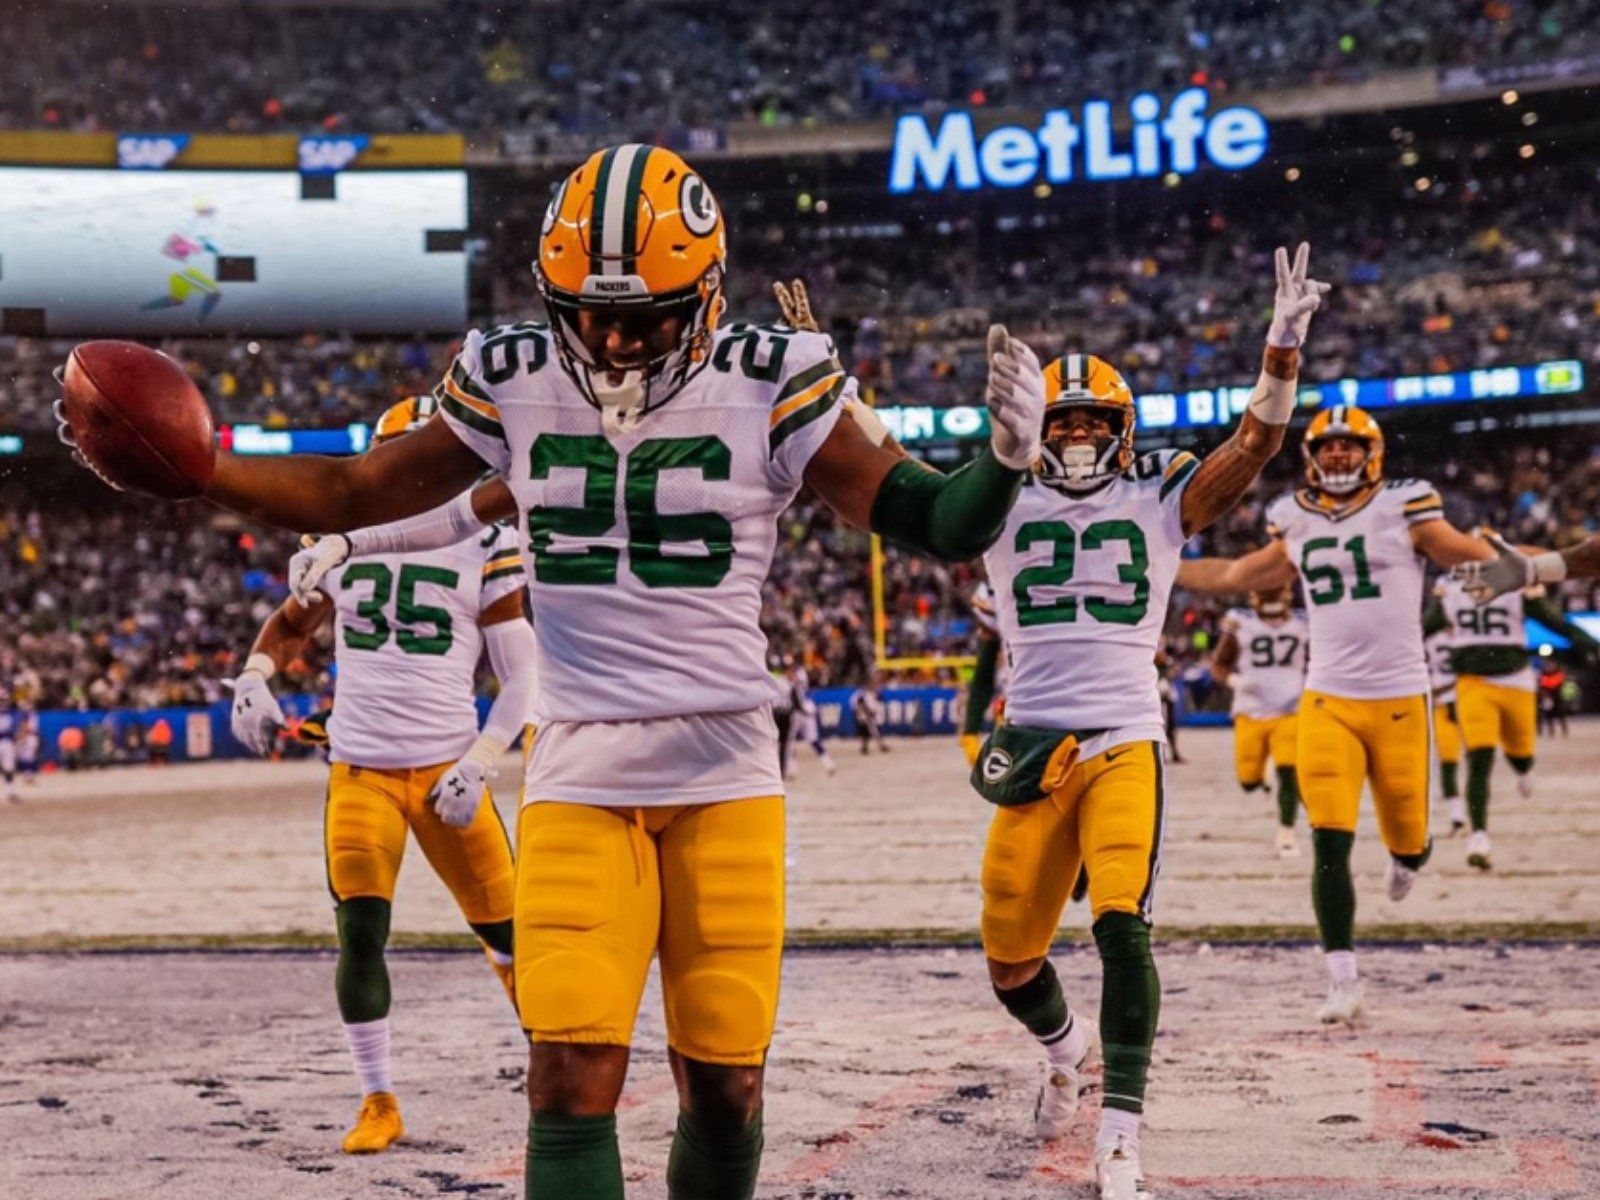 10 Cool Snowy Images From The Packers Cool Snowy Win Over The Giants